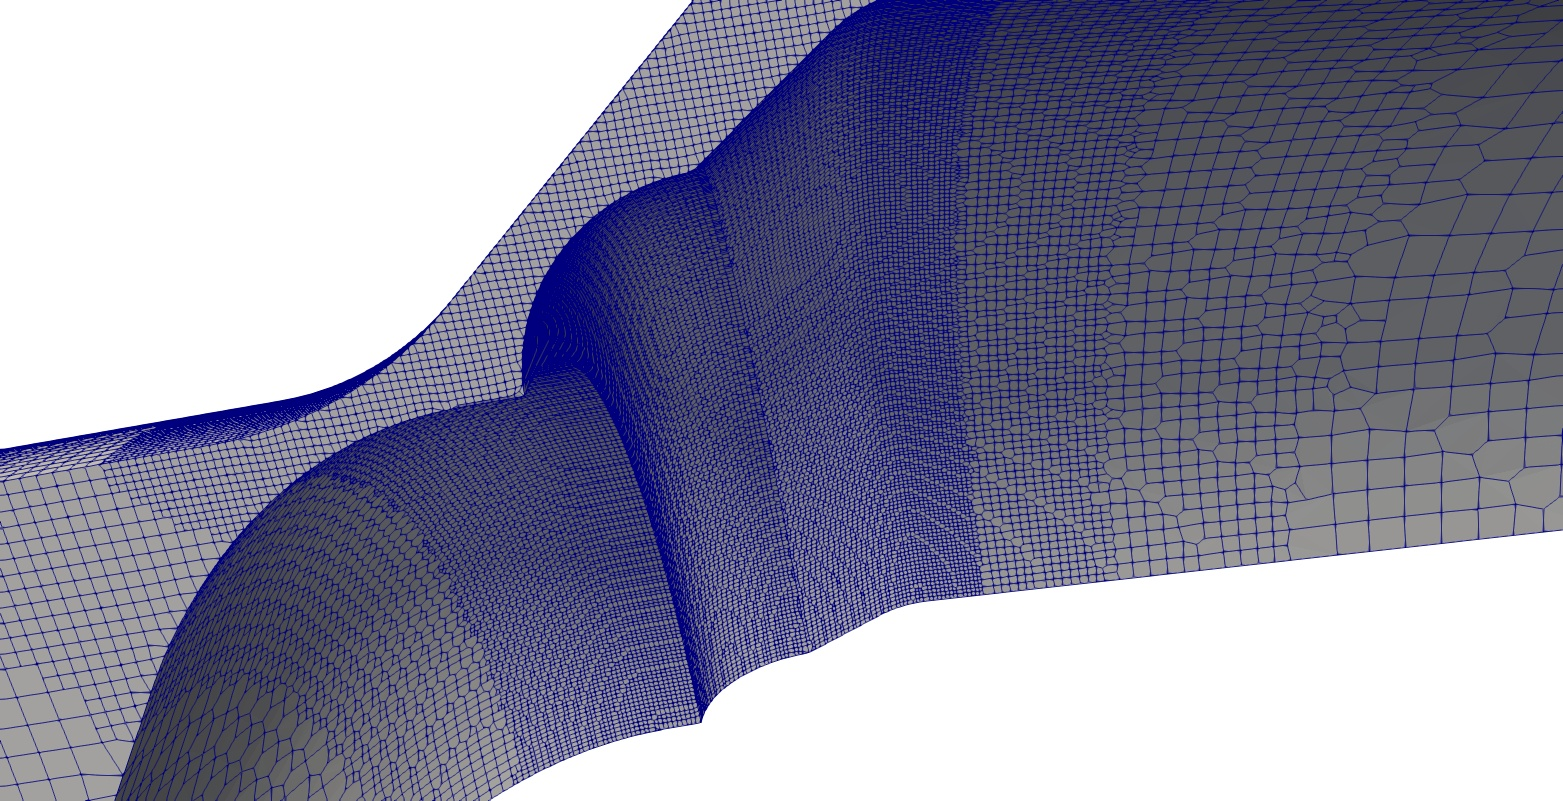 Image: Detailled mesh view around the gap